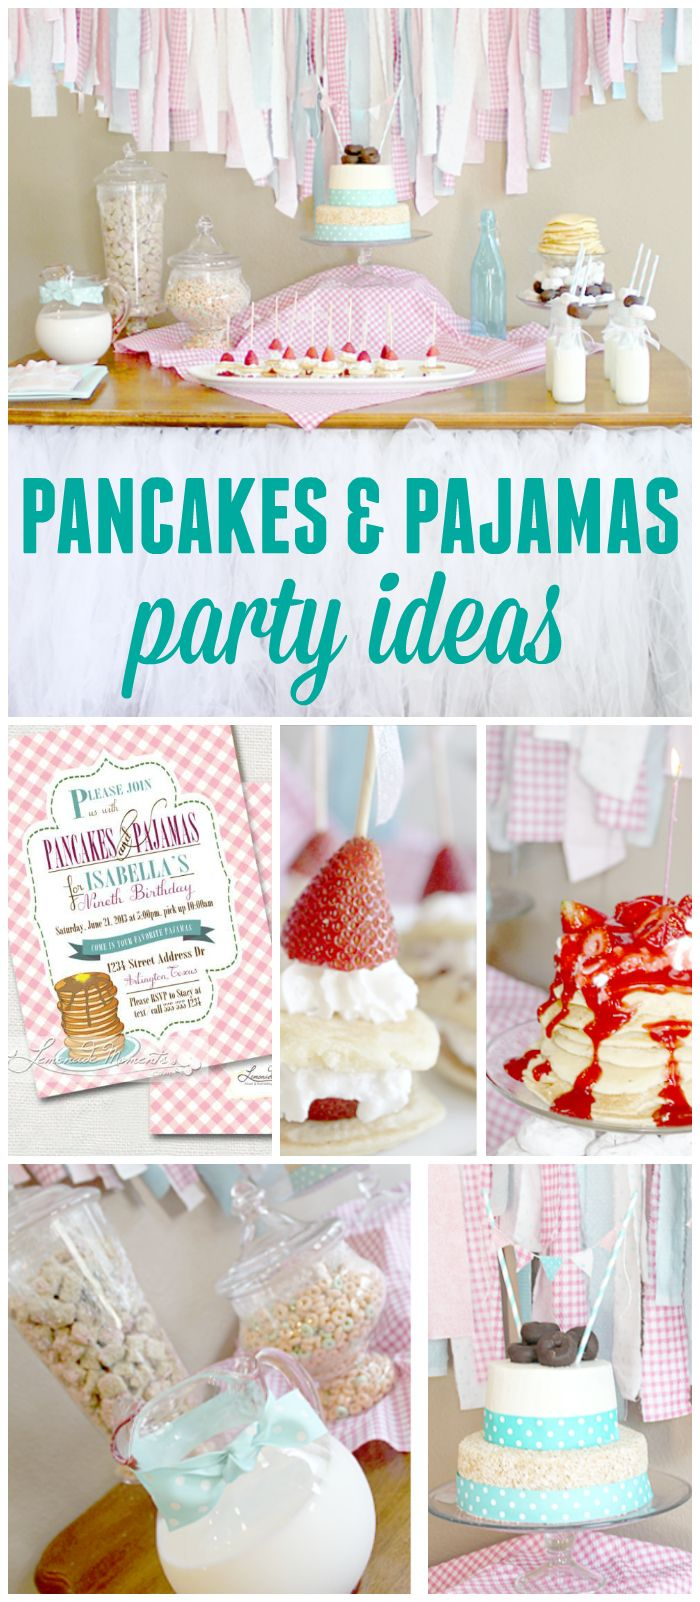 A slumber party for a girl birthday with a pancake and pajamas theme and fun breakfast treats! See more party planning ideas at CatchMyParty.com!